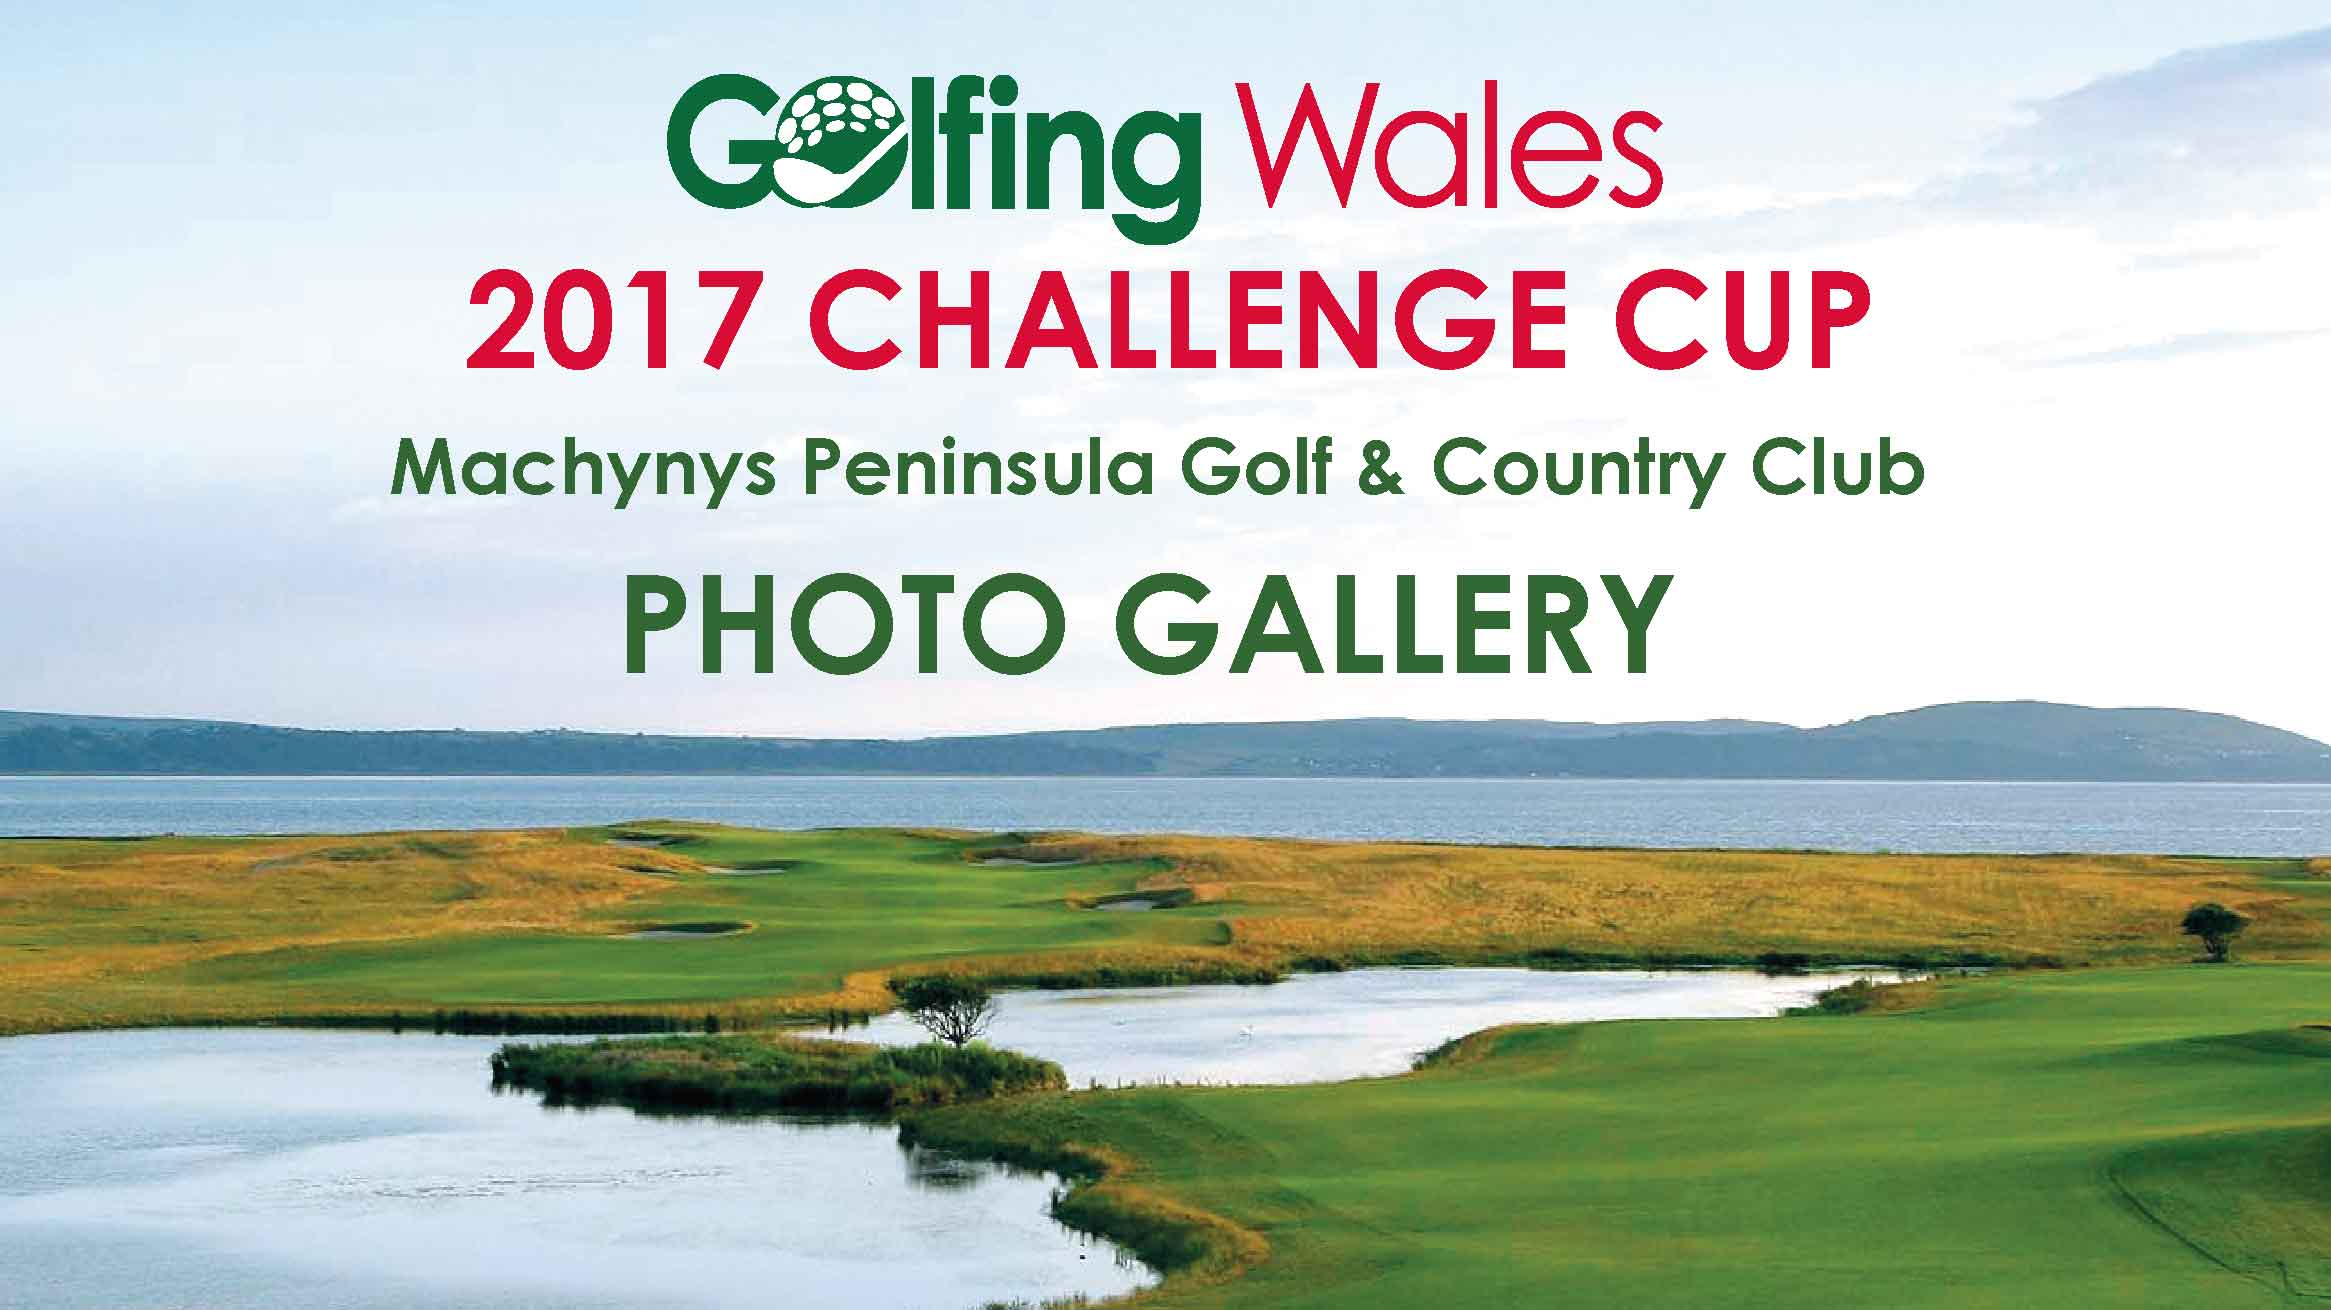 2017 Golfing Wales Challenge Cup - Photo Gallery